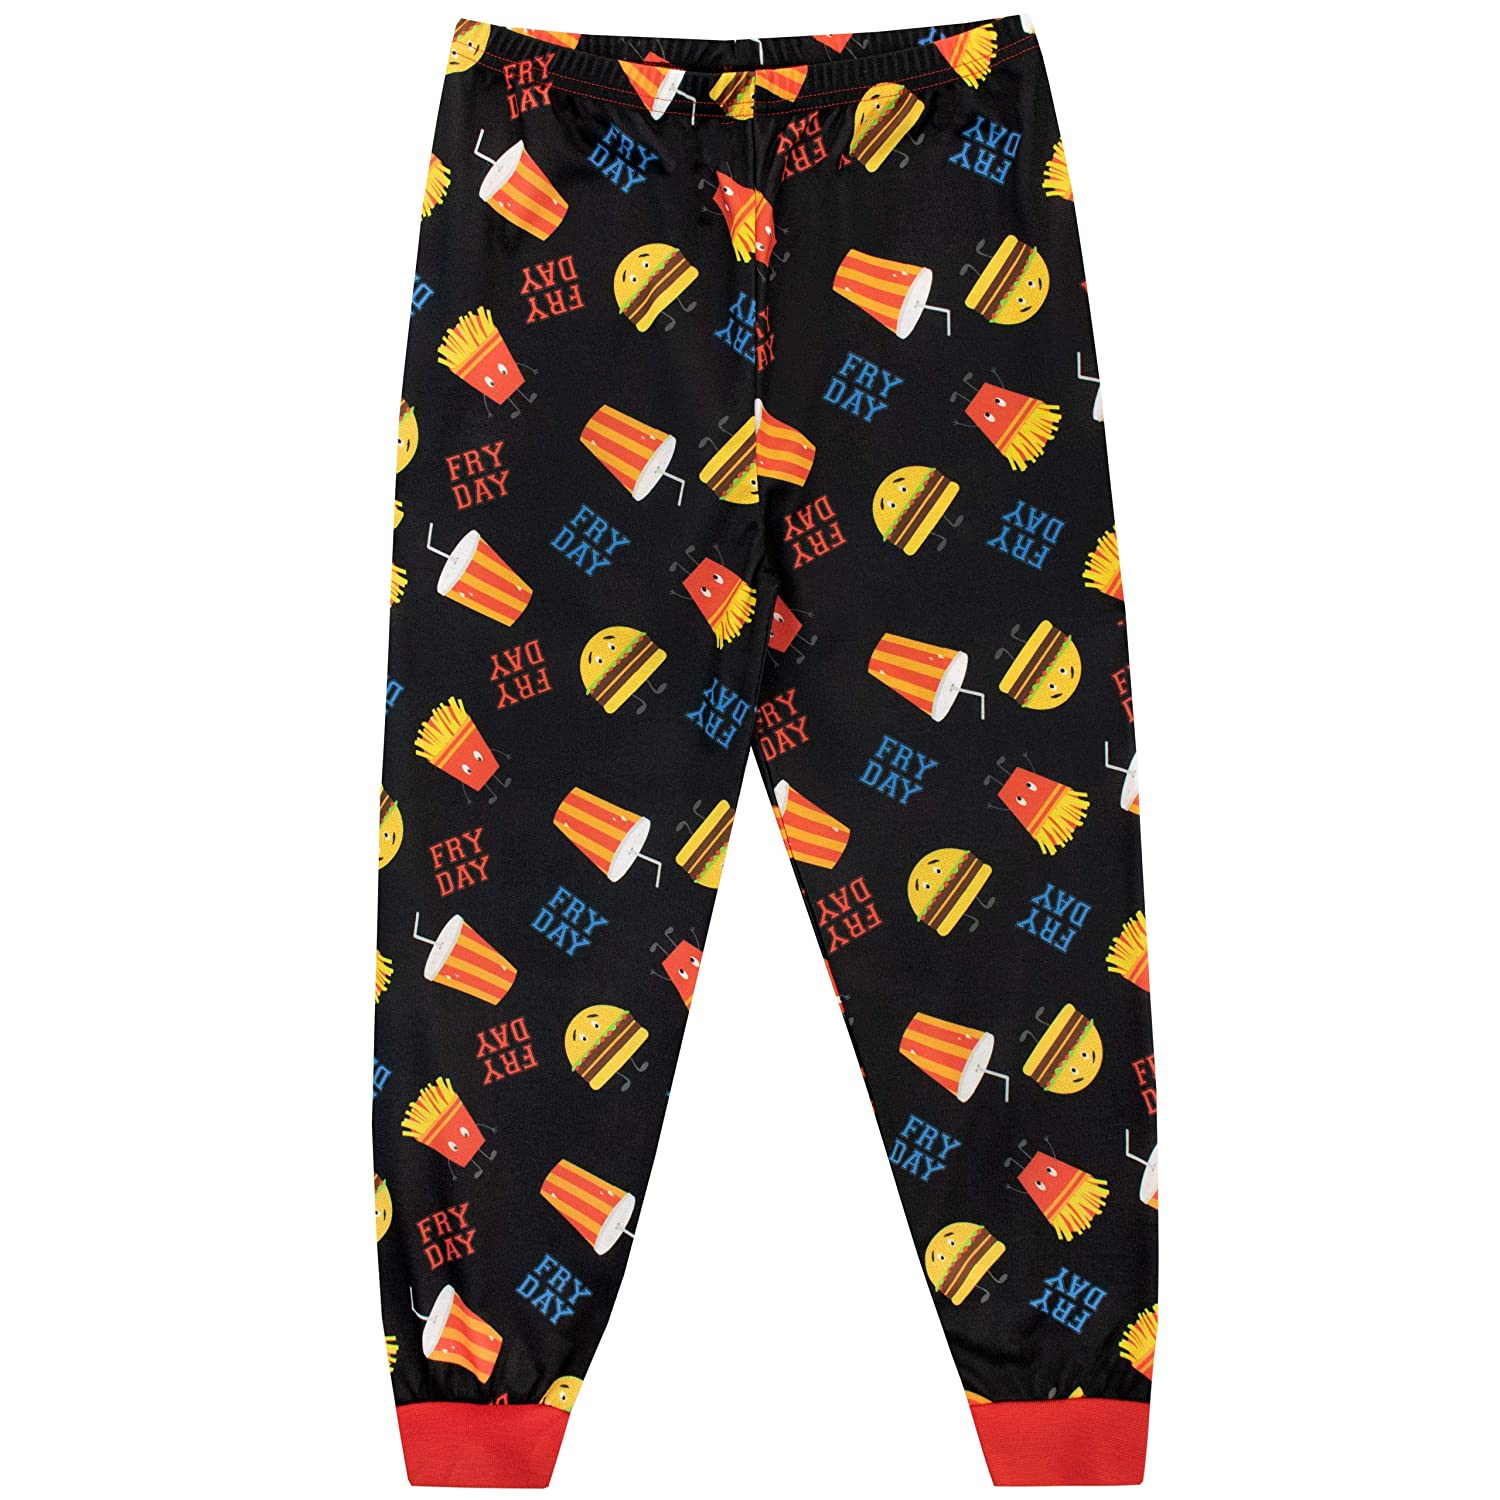 Harry Bear Boys Pajamas Every Day is A Fry-Day